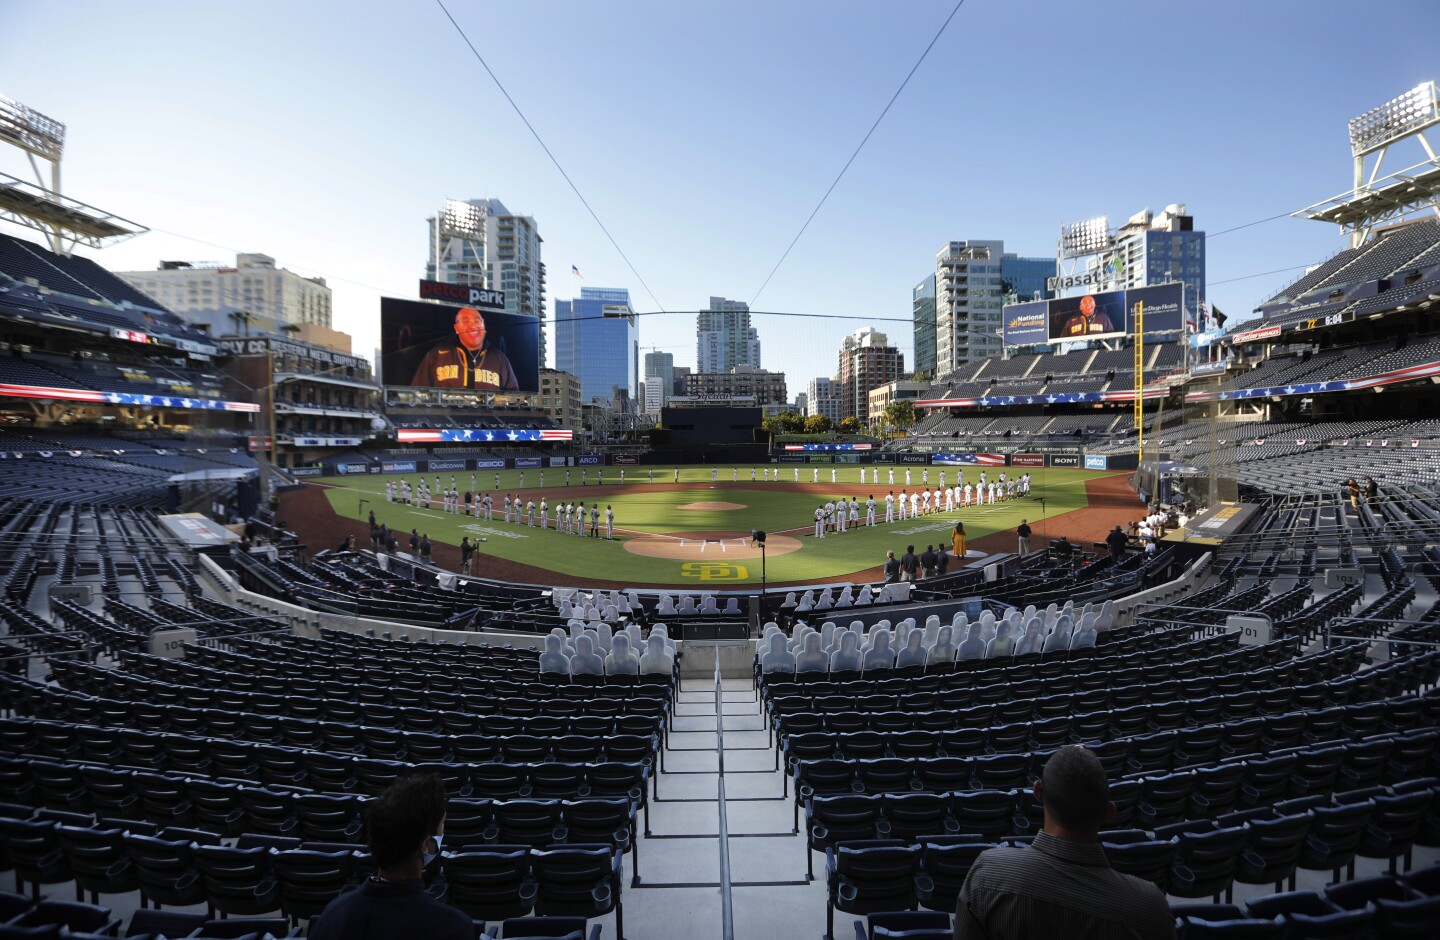 The Padres and Diamondback line the bases for the national anthem on opening day at Petco Park.